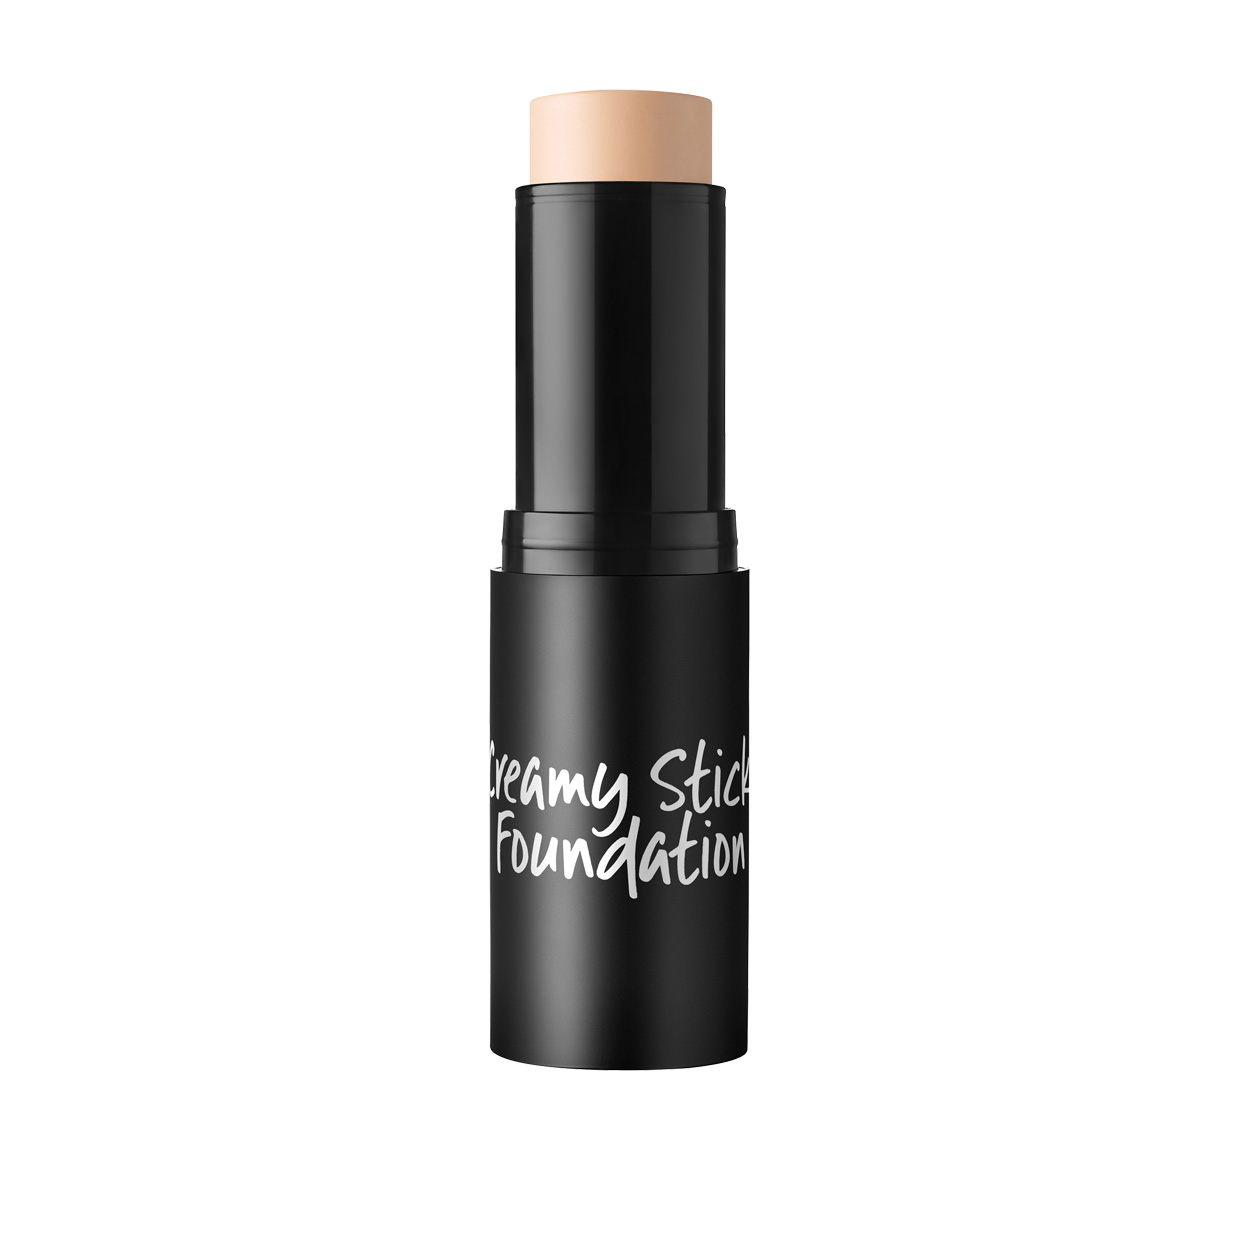 Alcina - Krémový make-up v tyčinke Creamy Stick Foundation - light